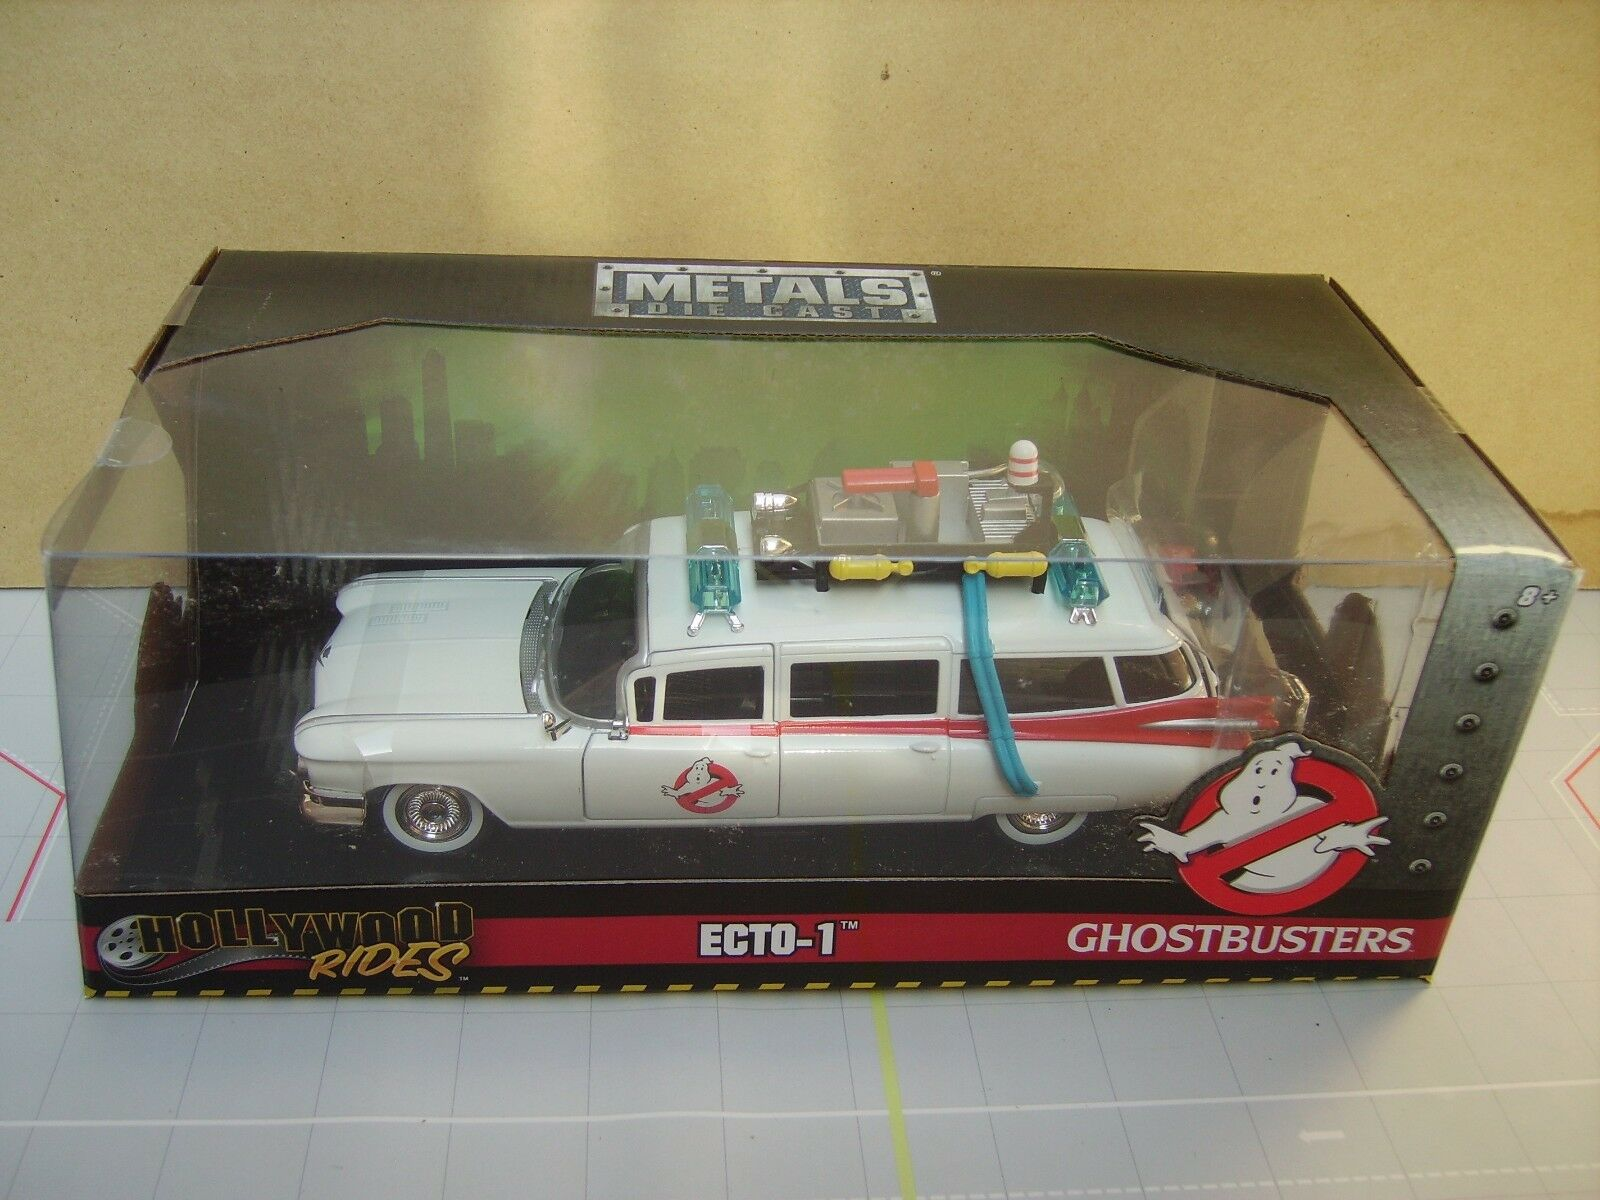 JADA 1 24 SCALE GHOSTBUSTERS CADILLAC ECTO-1